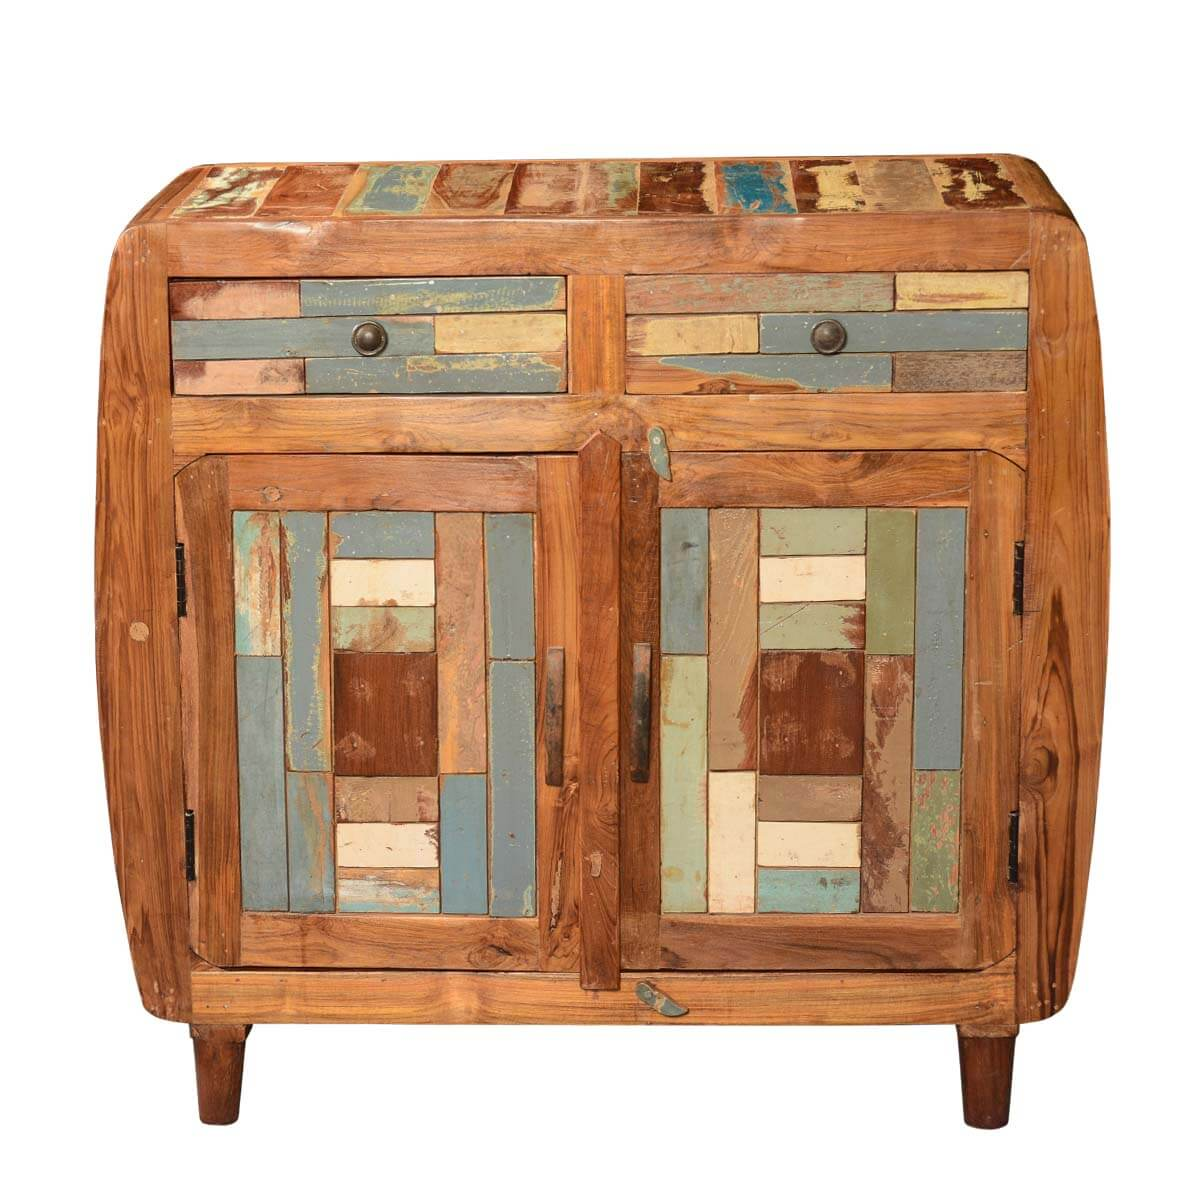 Rounded Corners Mosaic Reclaimed Wood Buffet Sideboard Cabinet